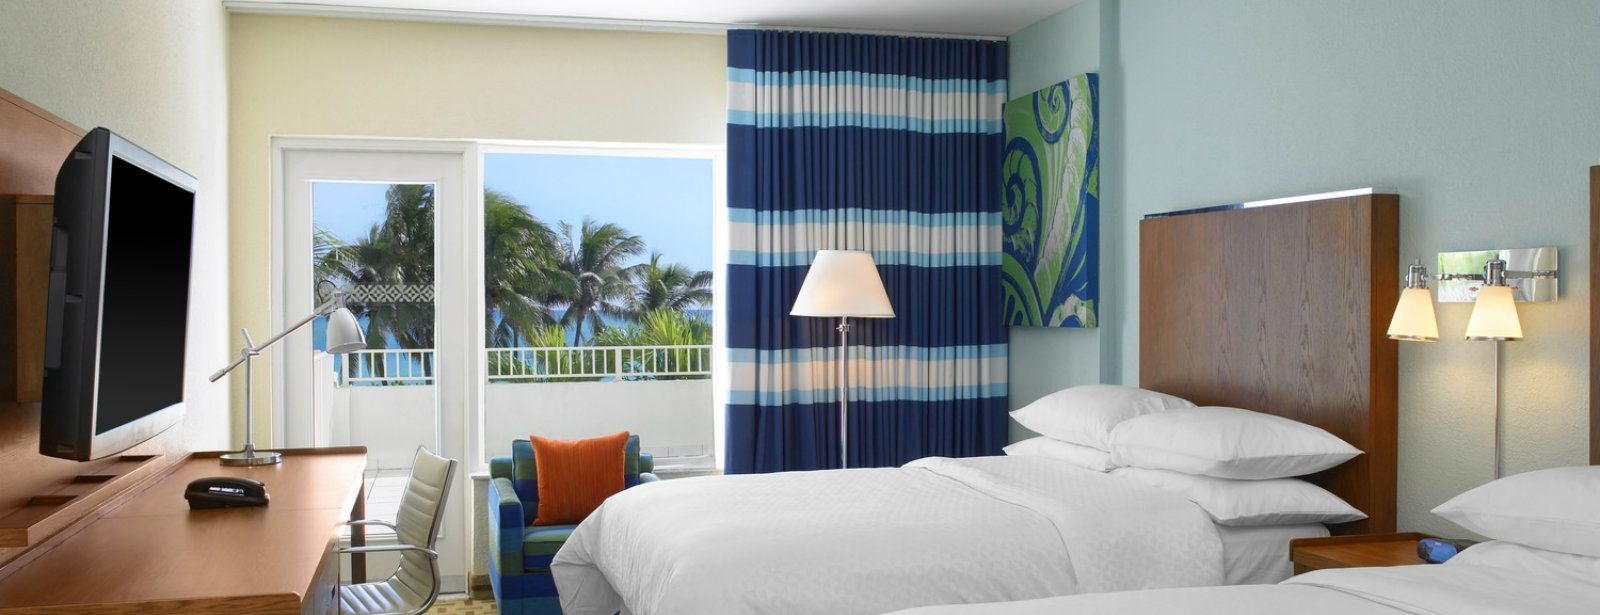 Miami Beach Accommodations - Double Bed Deluxe Oceanfront